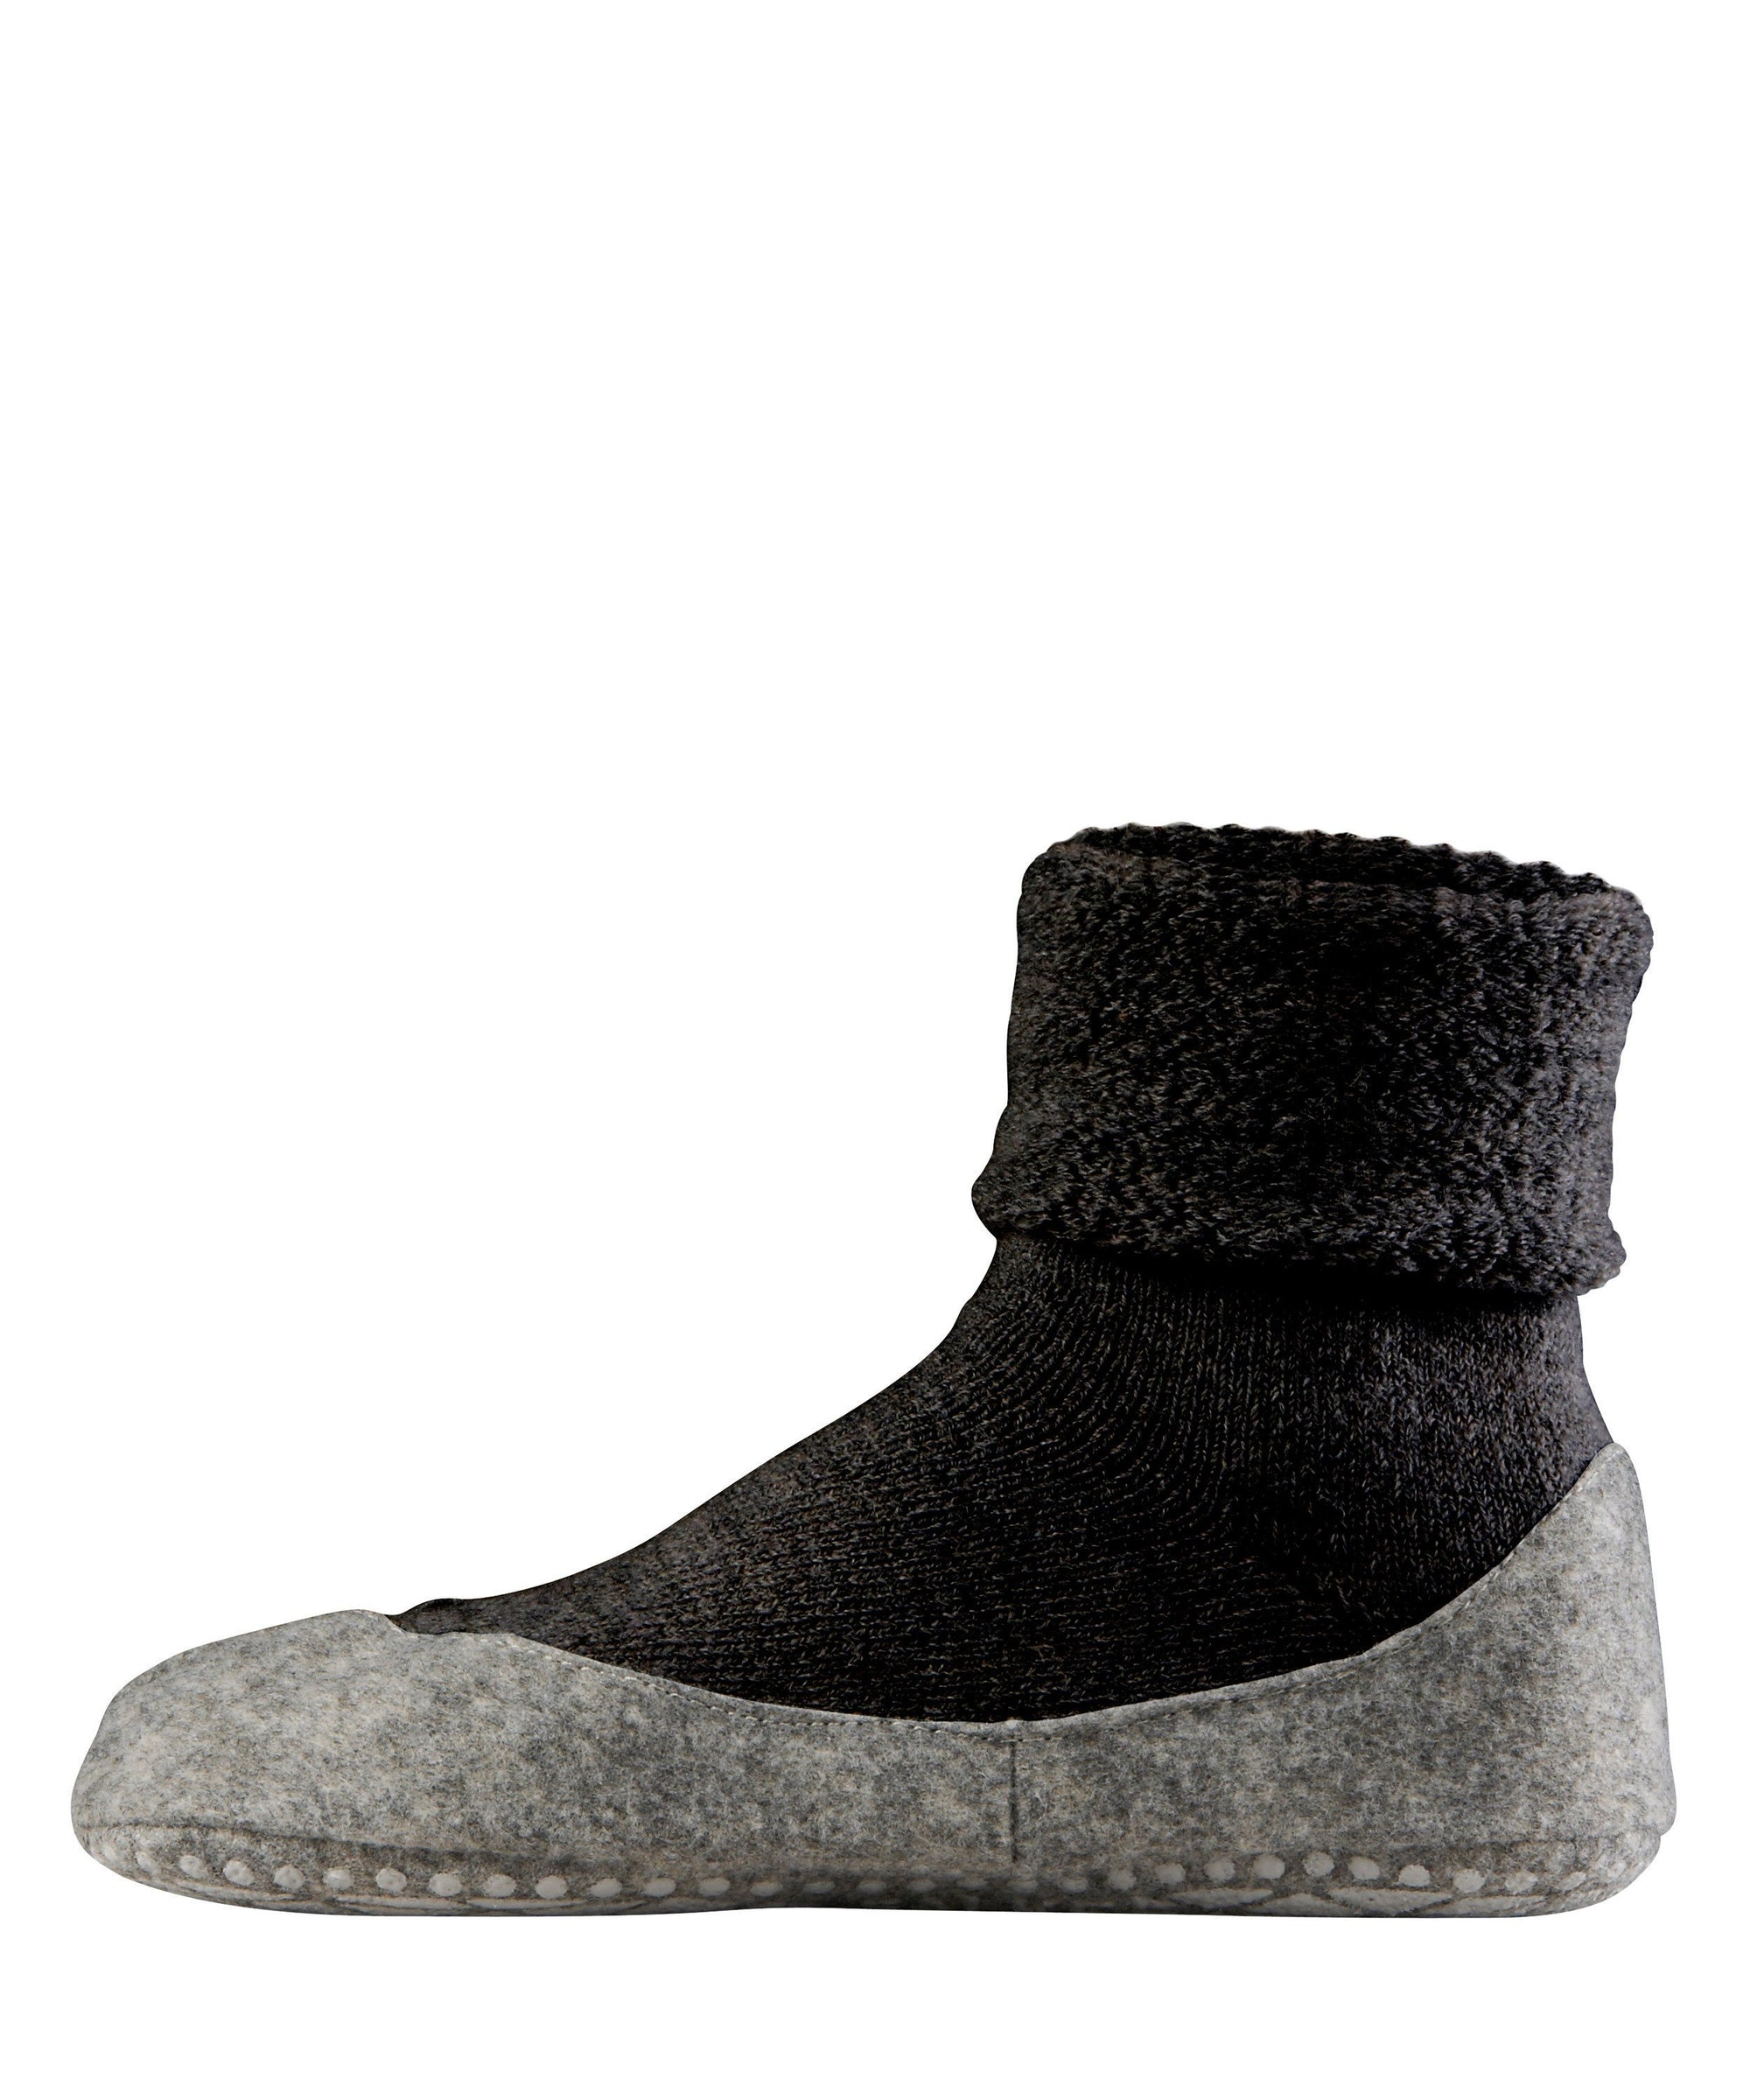 Falke Cosy Shoe Slippers